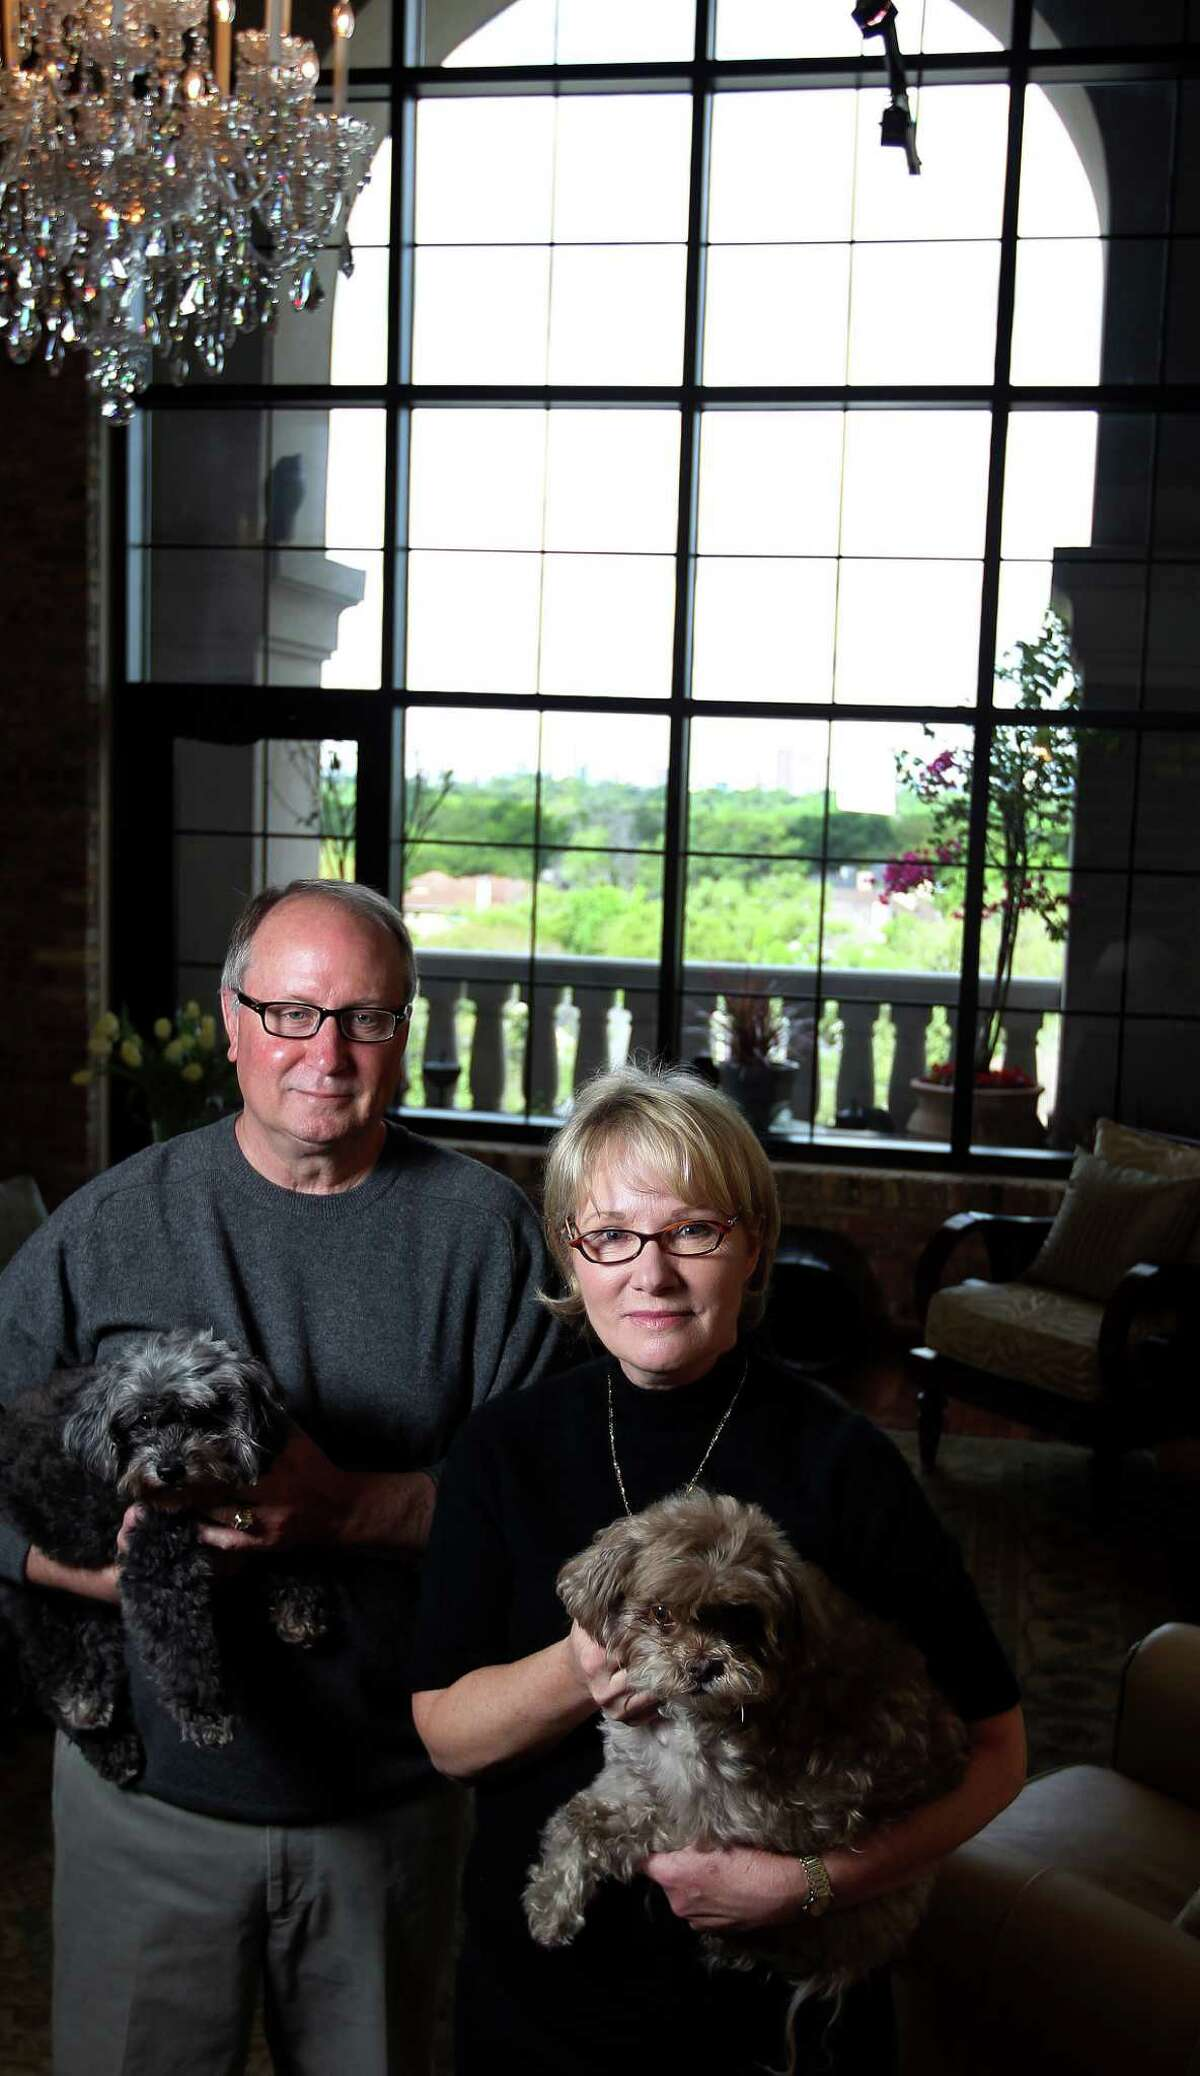 Bob and Pat Ballard in their Renoir condo on Shepherd, Saturday, April 6, 2013, in Houston. They sold their West U home one hour after putting it on the market. They now live in a condo, the Renoir, so they can spend more time at their lake house on Lake Livingston. ( Karen Warren / Houston Chronicle )